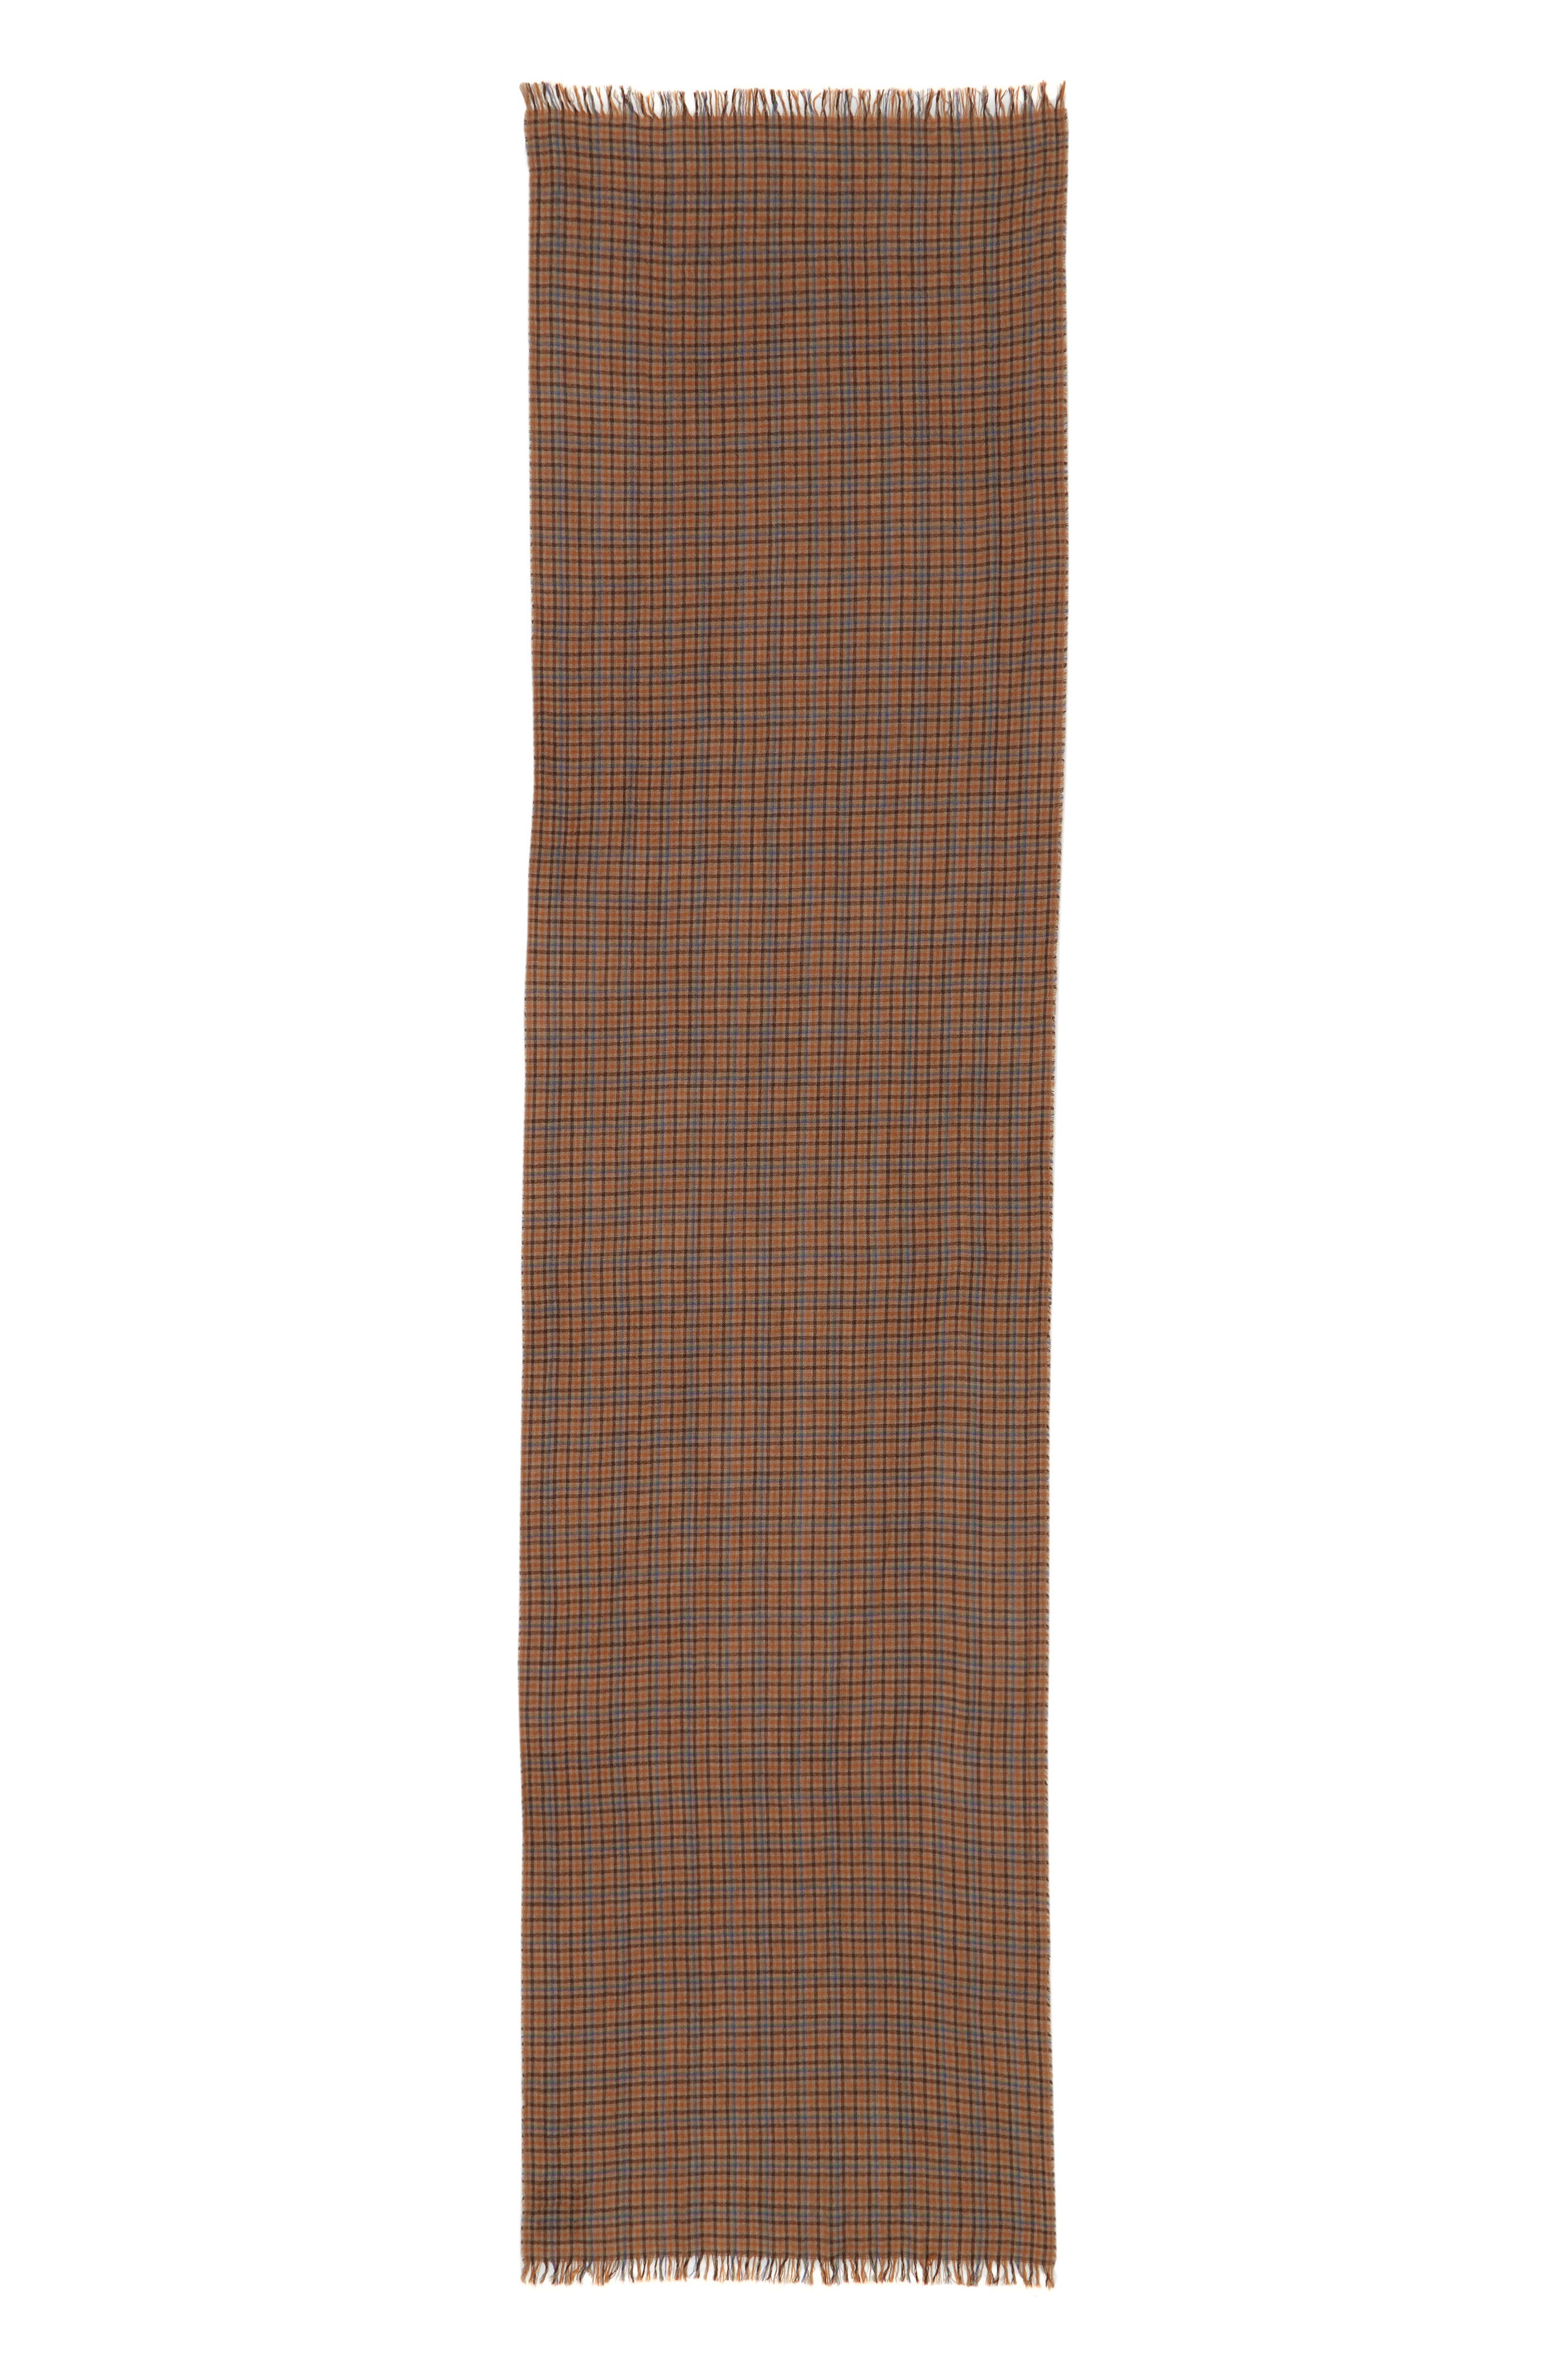 Drakes Plaid Merino Wool Scarf,                             Alternate thumbnail 2, color,                             BROWN CHECK